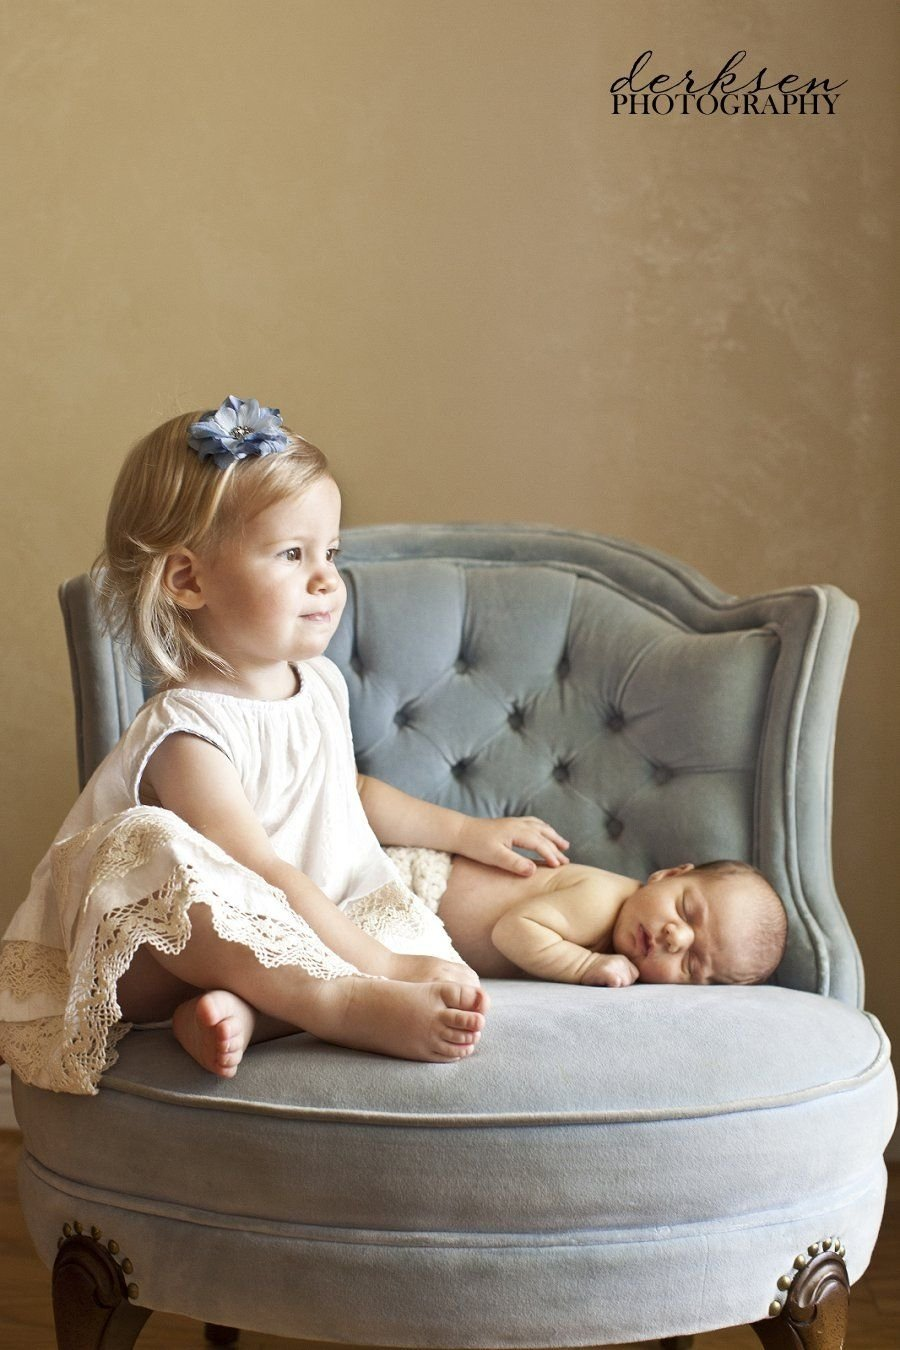 10 Stylish Newborn Photo Ideas With Siblings great sibling pose when older sibling isnt old enough to hold the 1